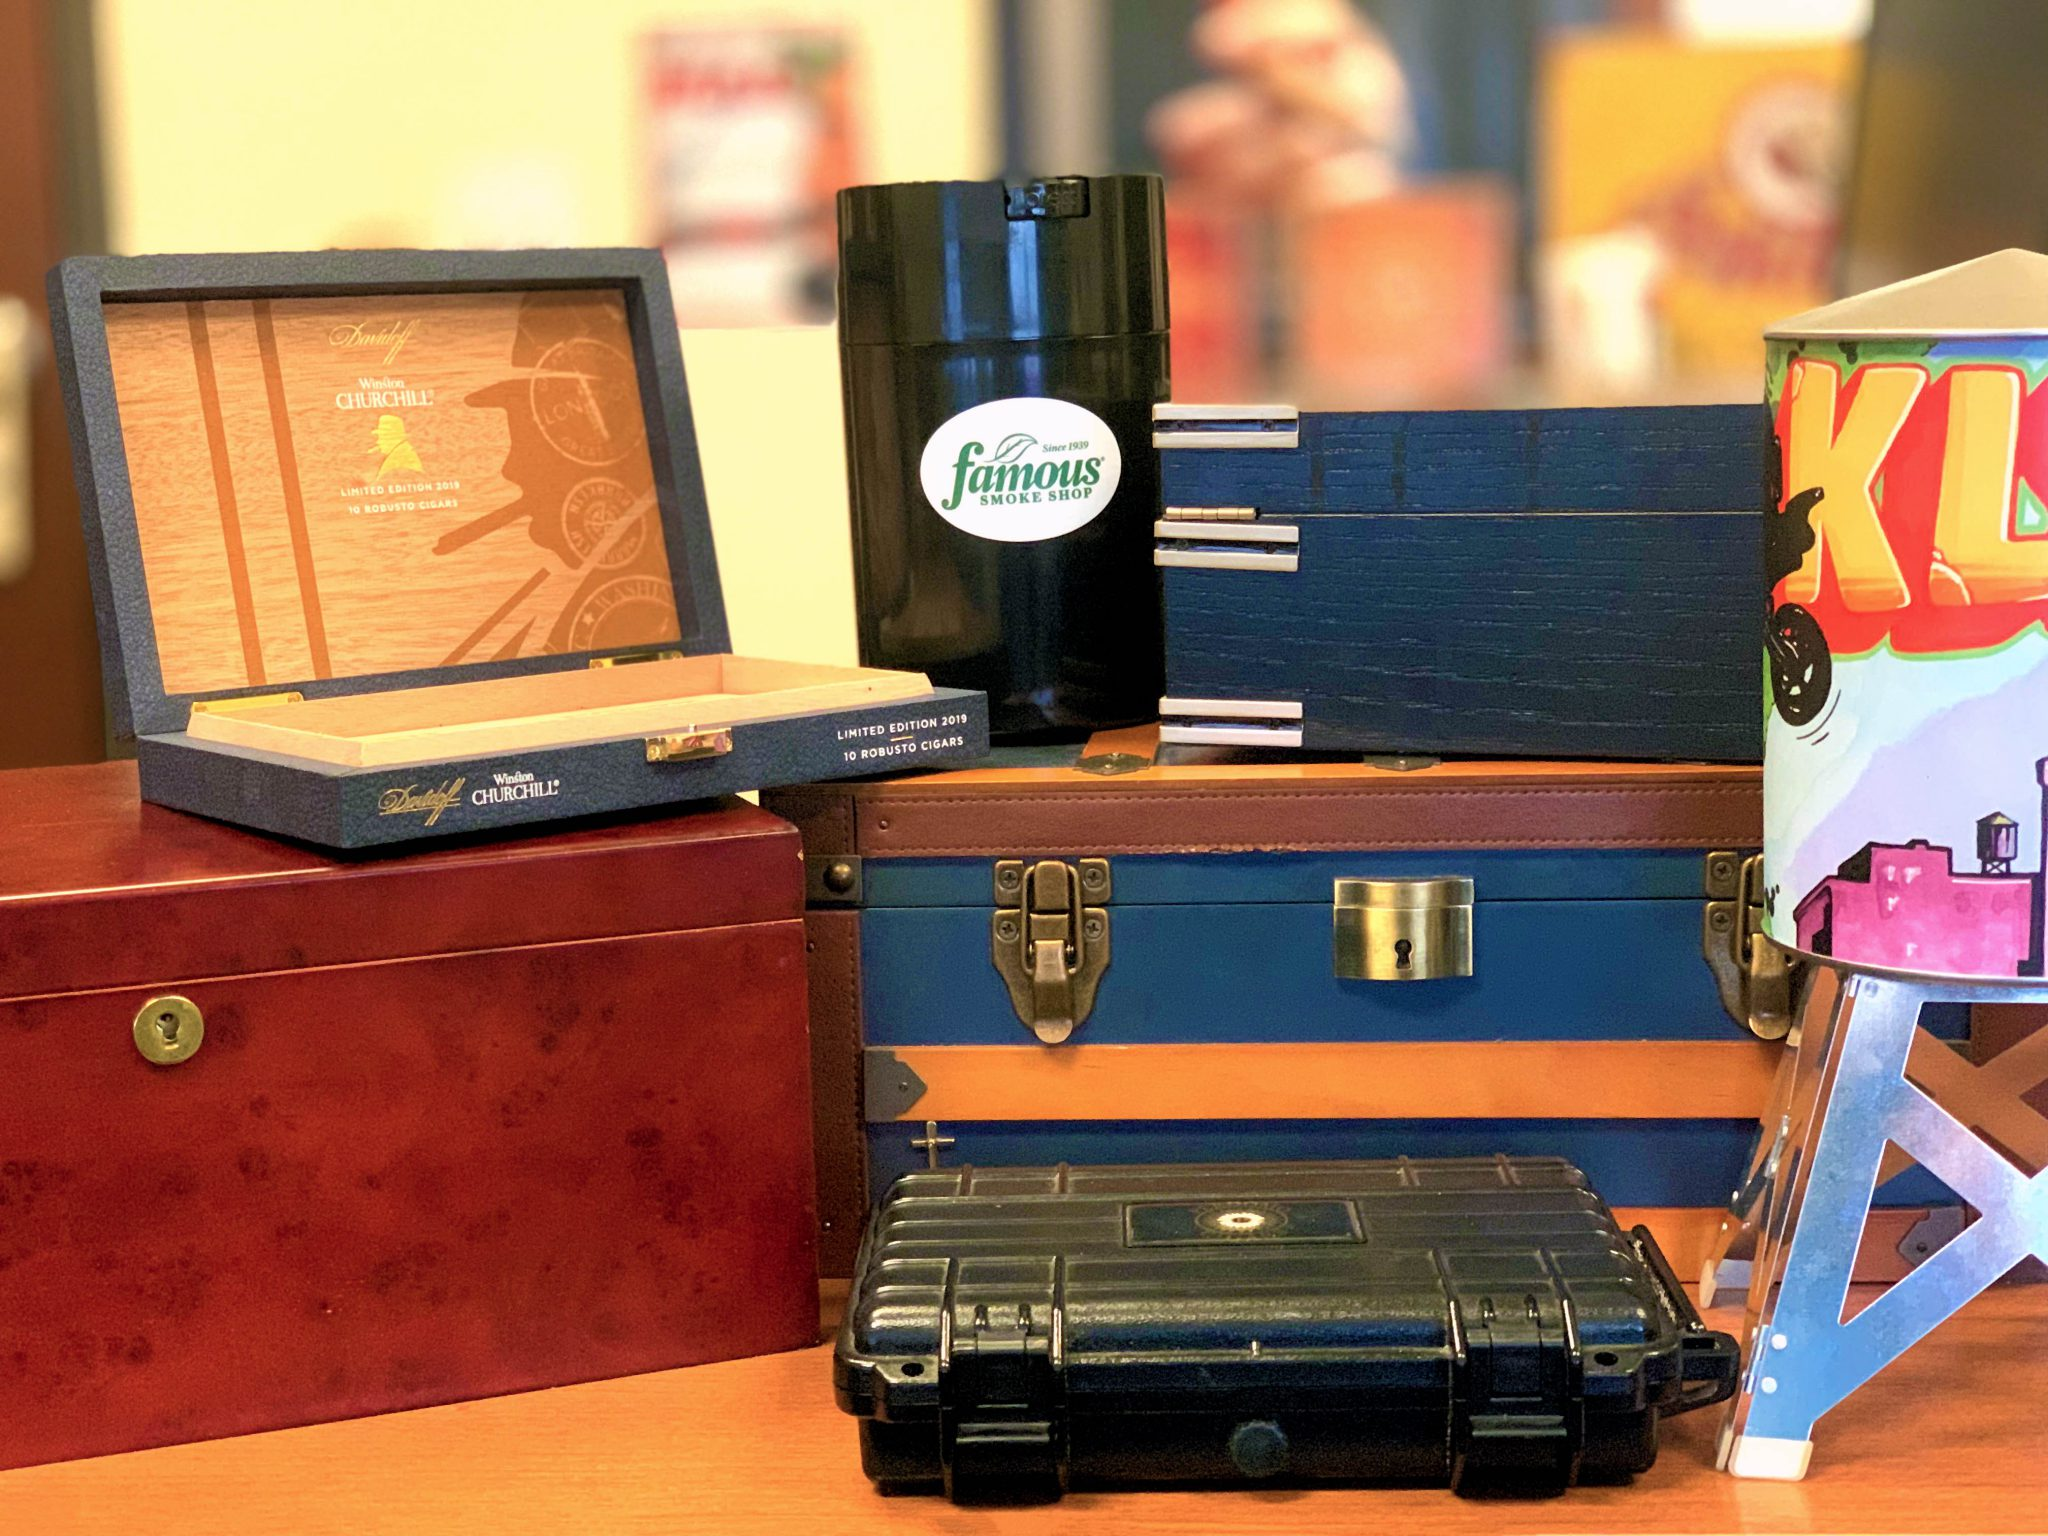 best cigar humidors under $50 what size humidor should I buy humidor choices at Famous Smoke Shop